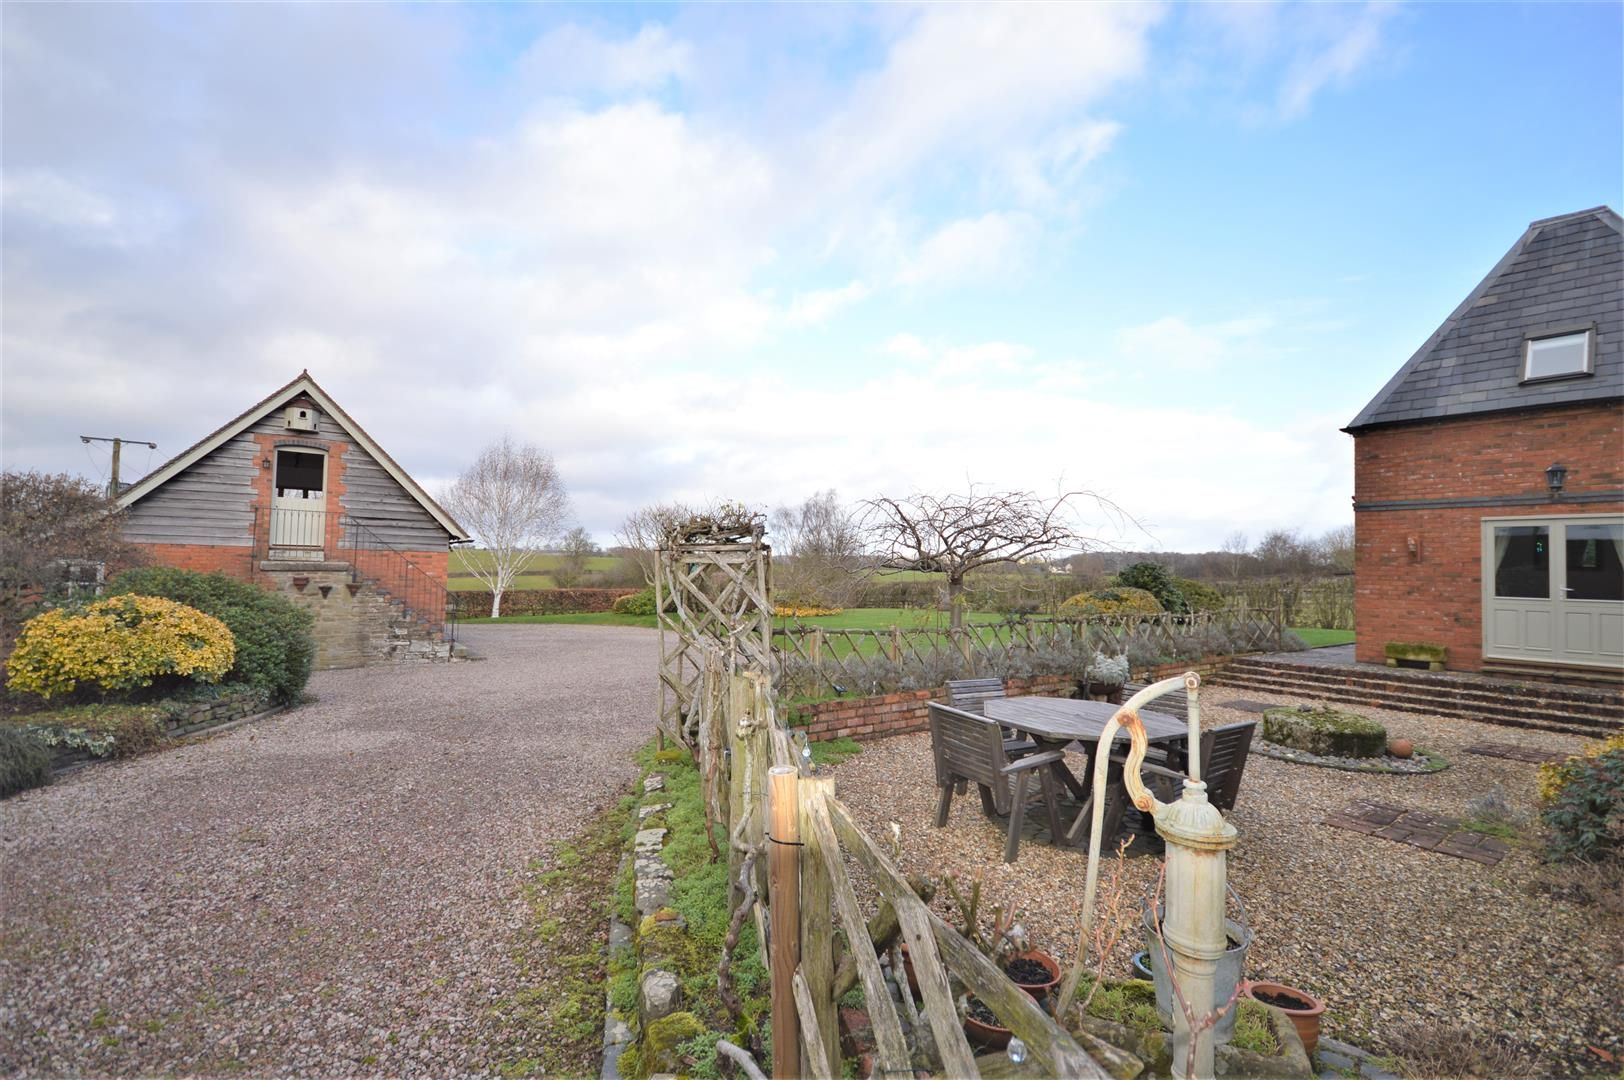 4 bed detached for sale in Marden 10